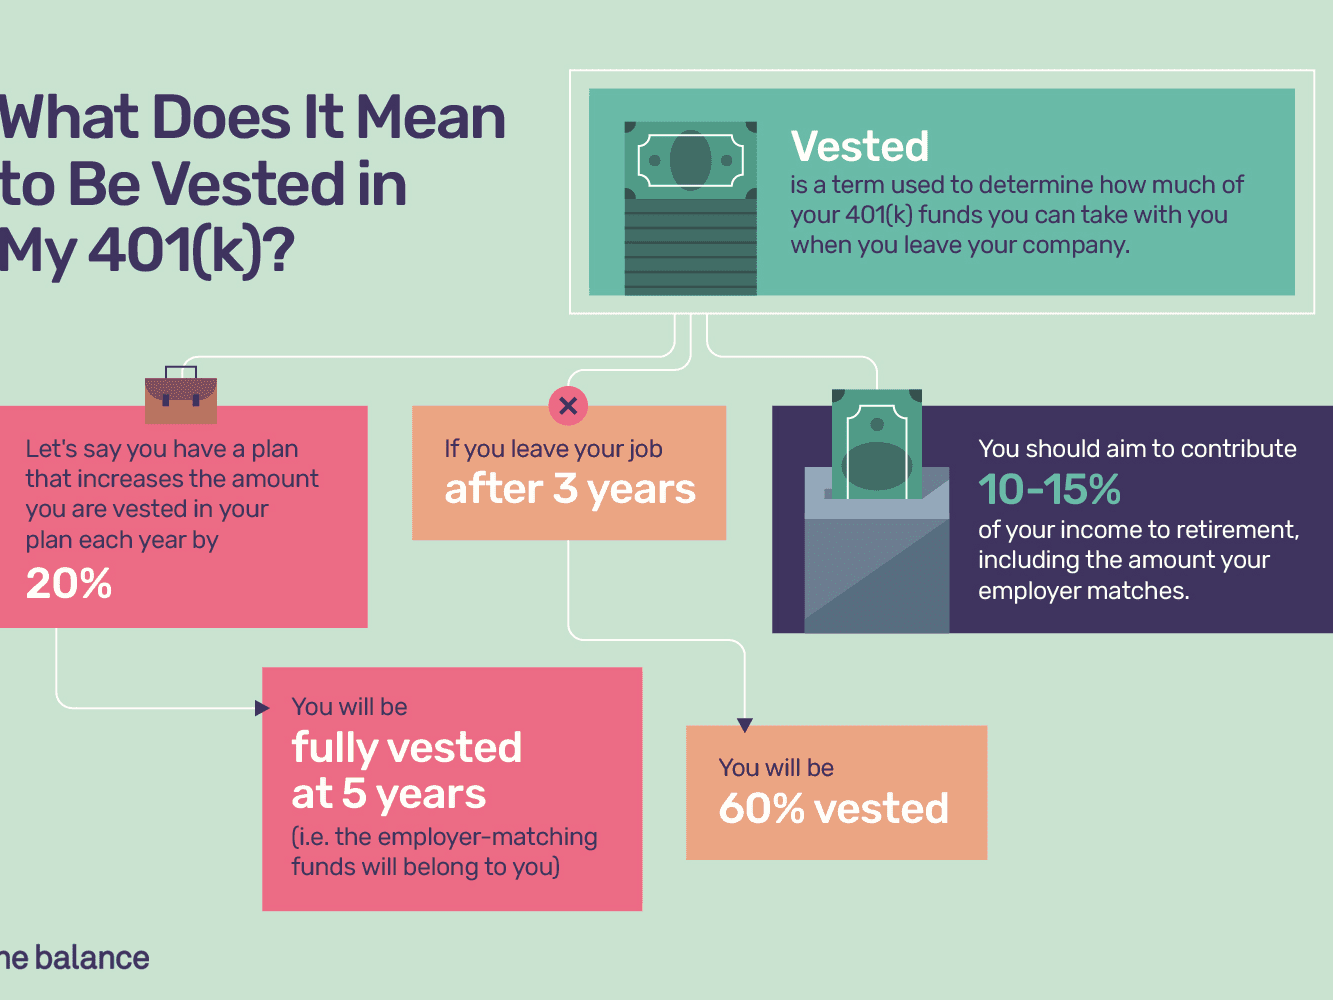 What Does It Mean to Be Vested in My 401(k)?